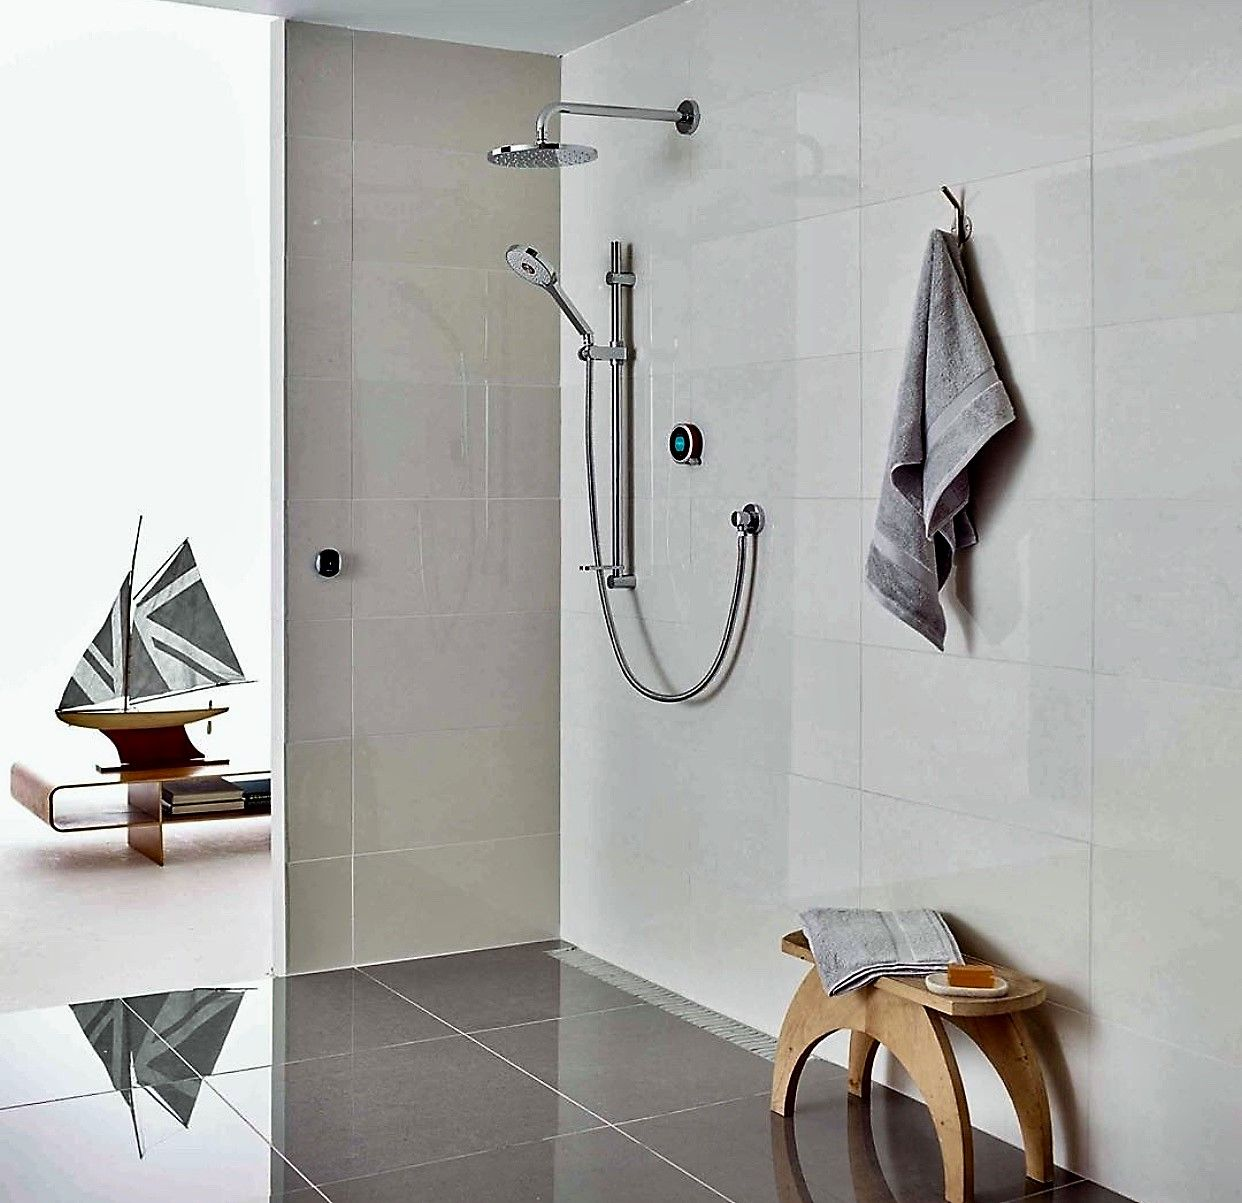 Extraordinary showering with the new Q smart shower from Aqualisa... It  features a unique water saving proximity sensor that decreases the water  flow when ...